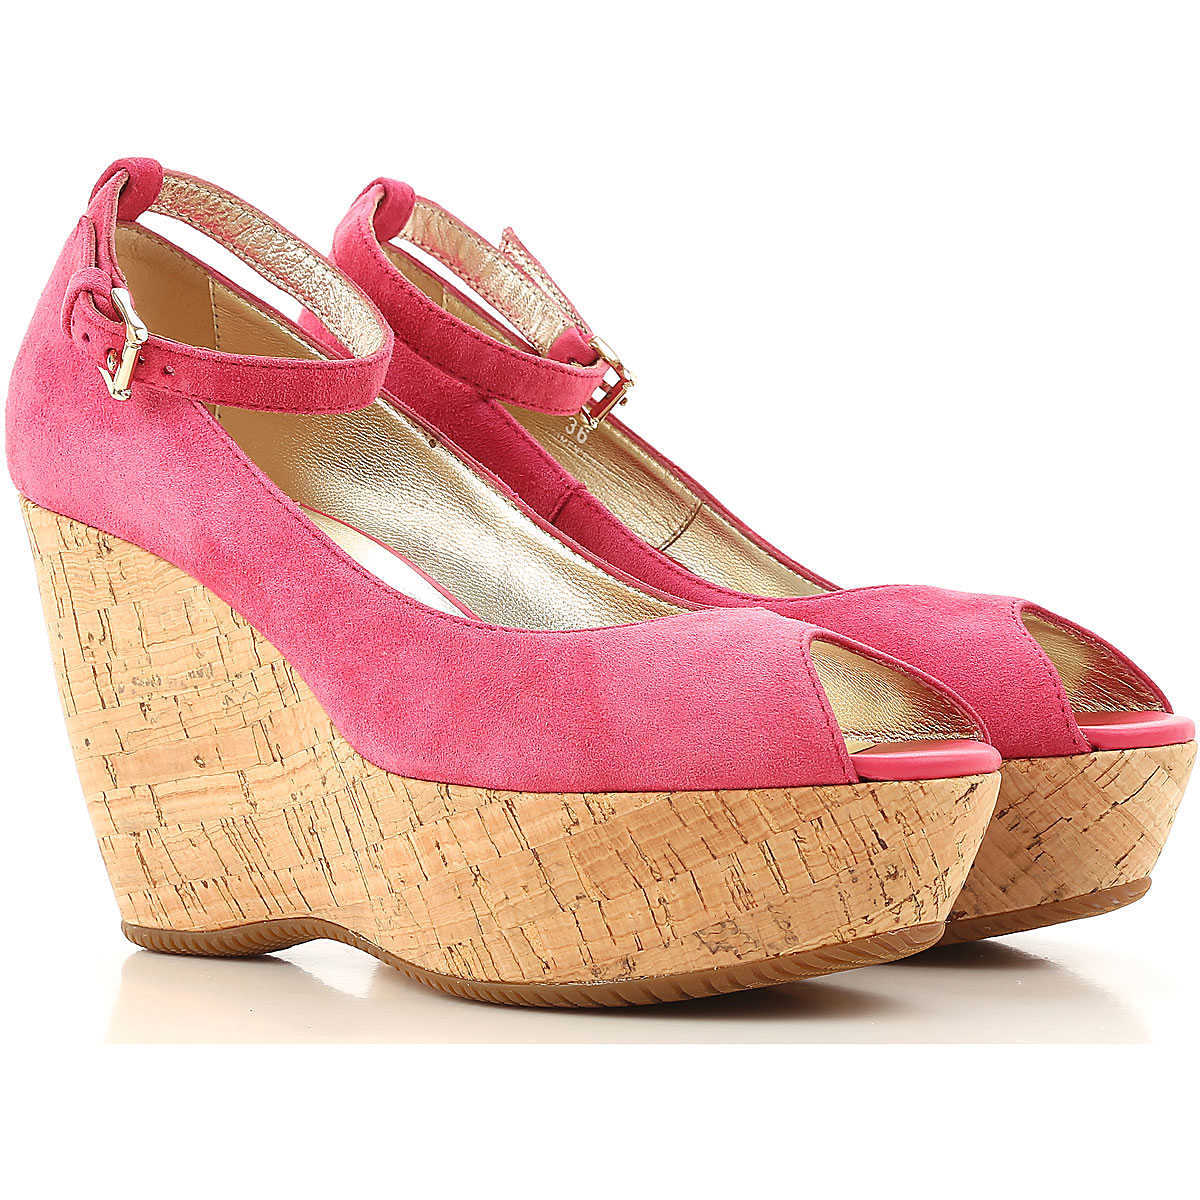 Hogan Wedges for Women On Sale in Outlet Fuchsia - GOOFASH